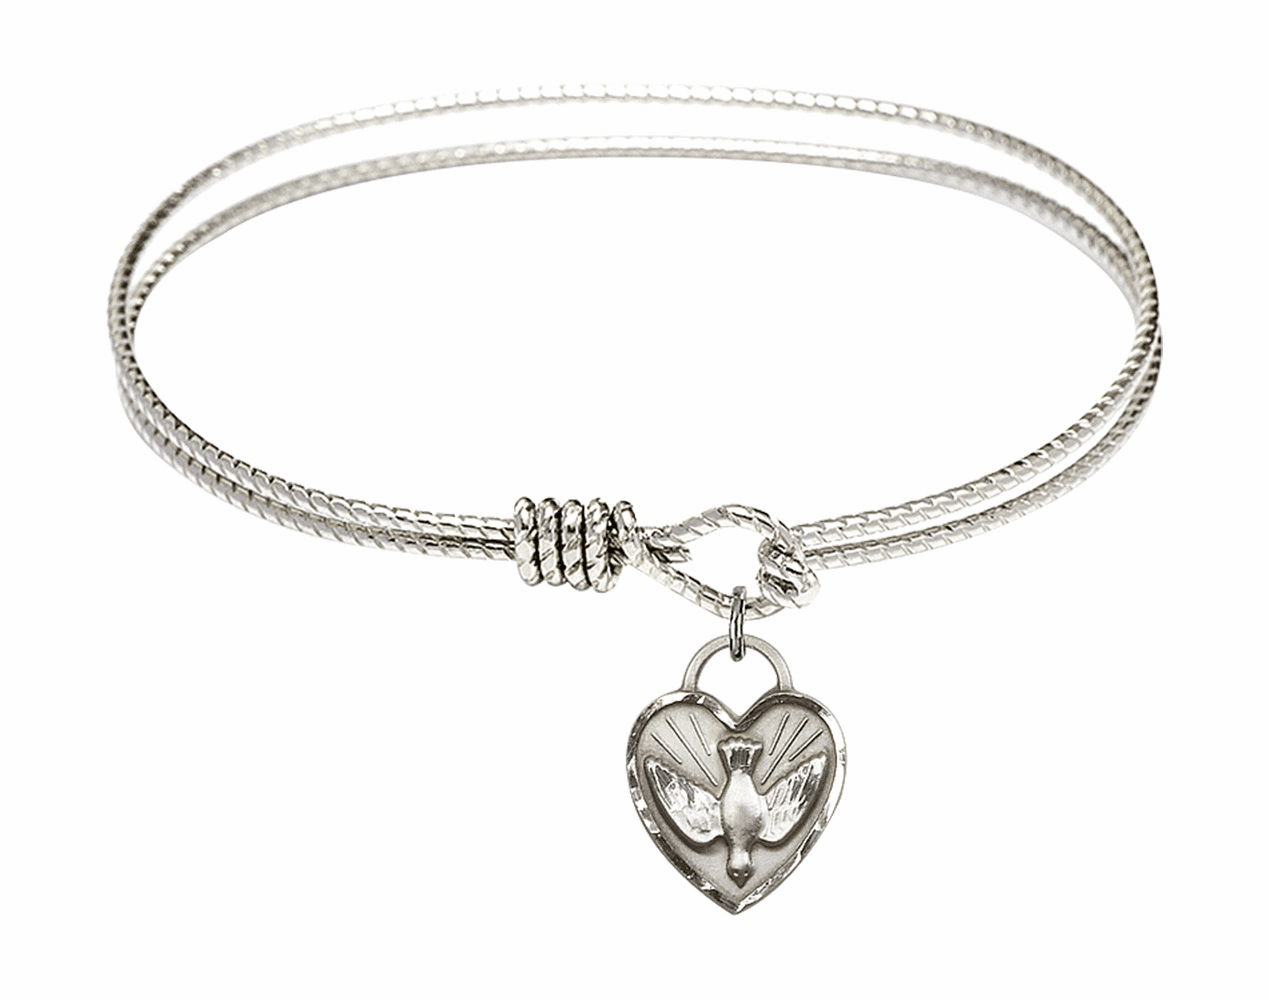 Round Twist Eye Hook Bangle Bracelet w/Dove Confirmation Heart Sterling Silver Charm by Bliss Mfg